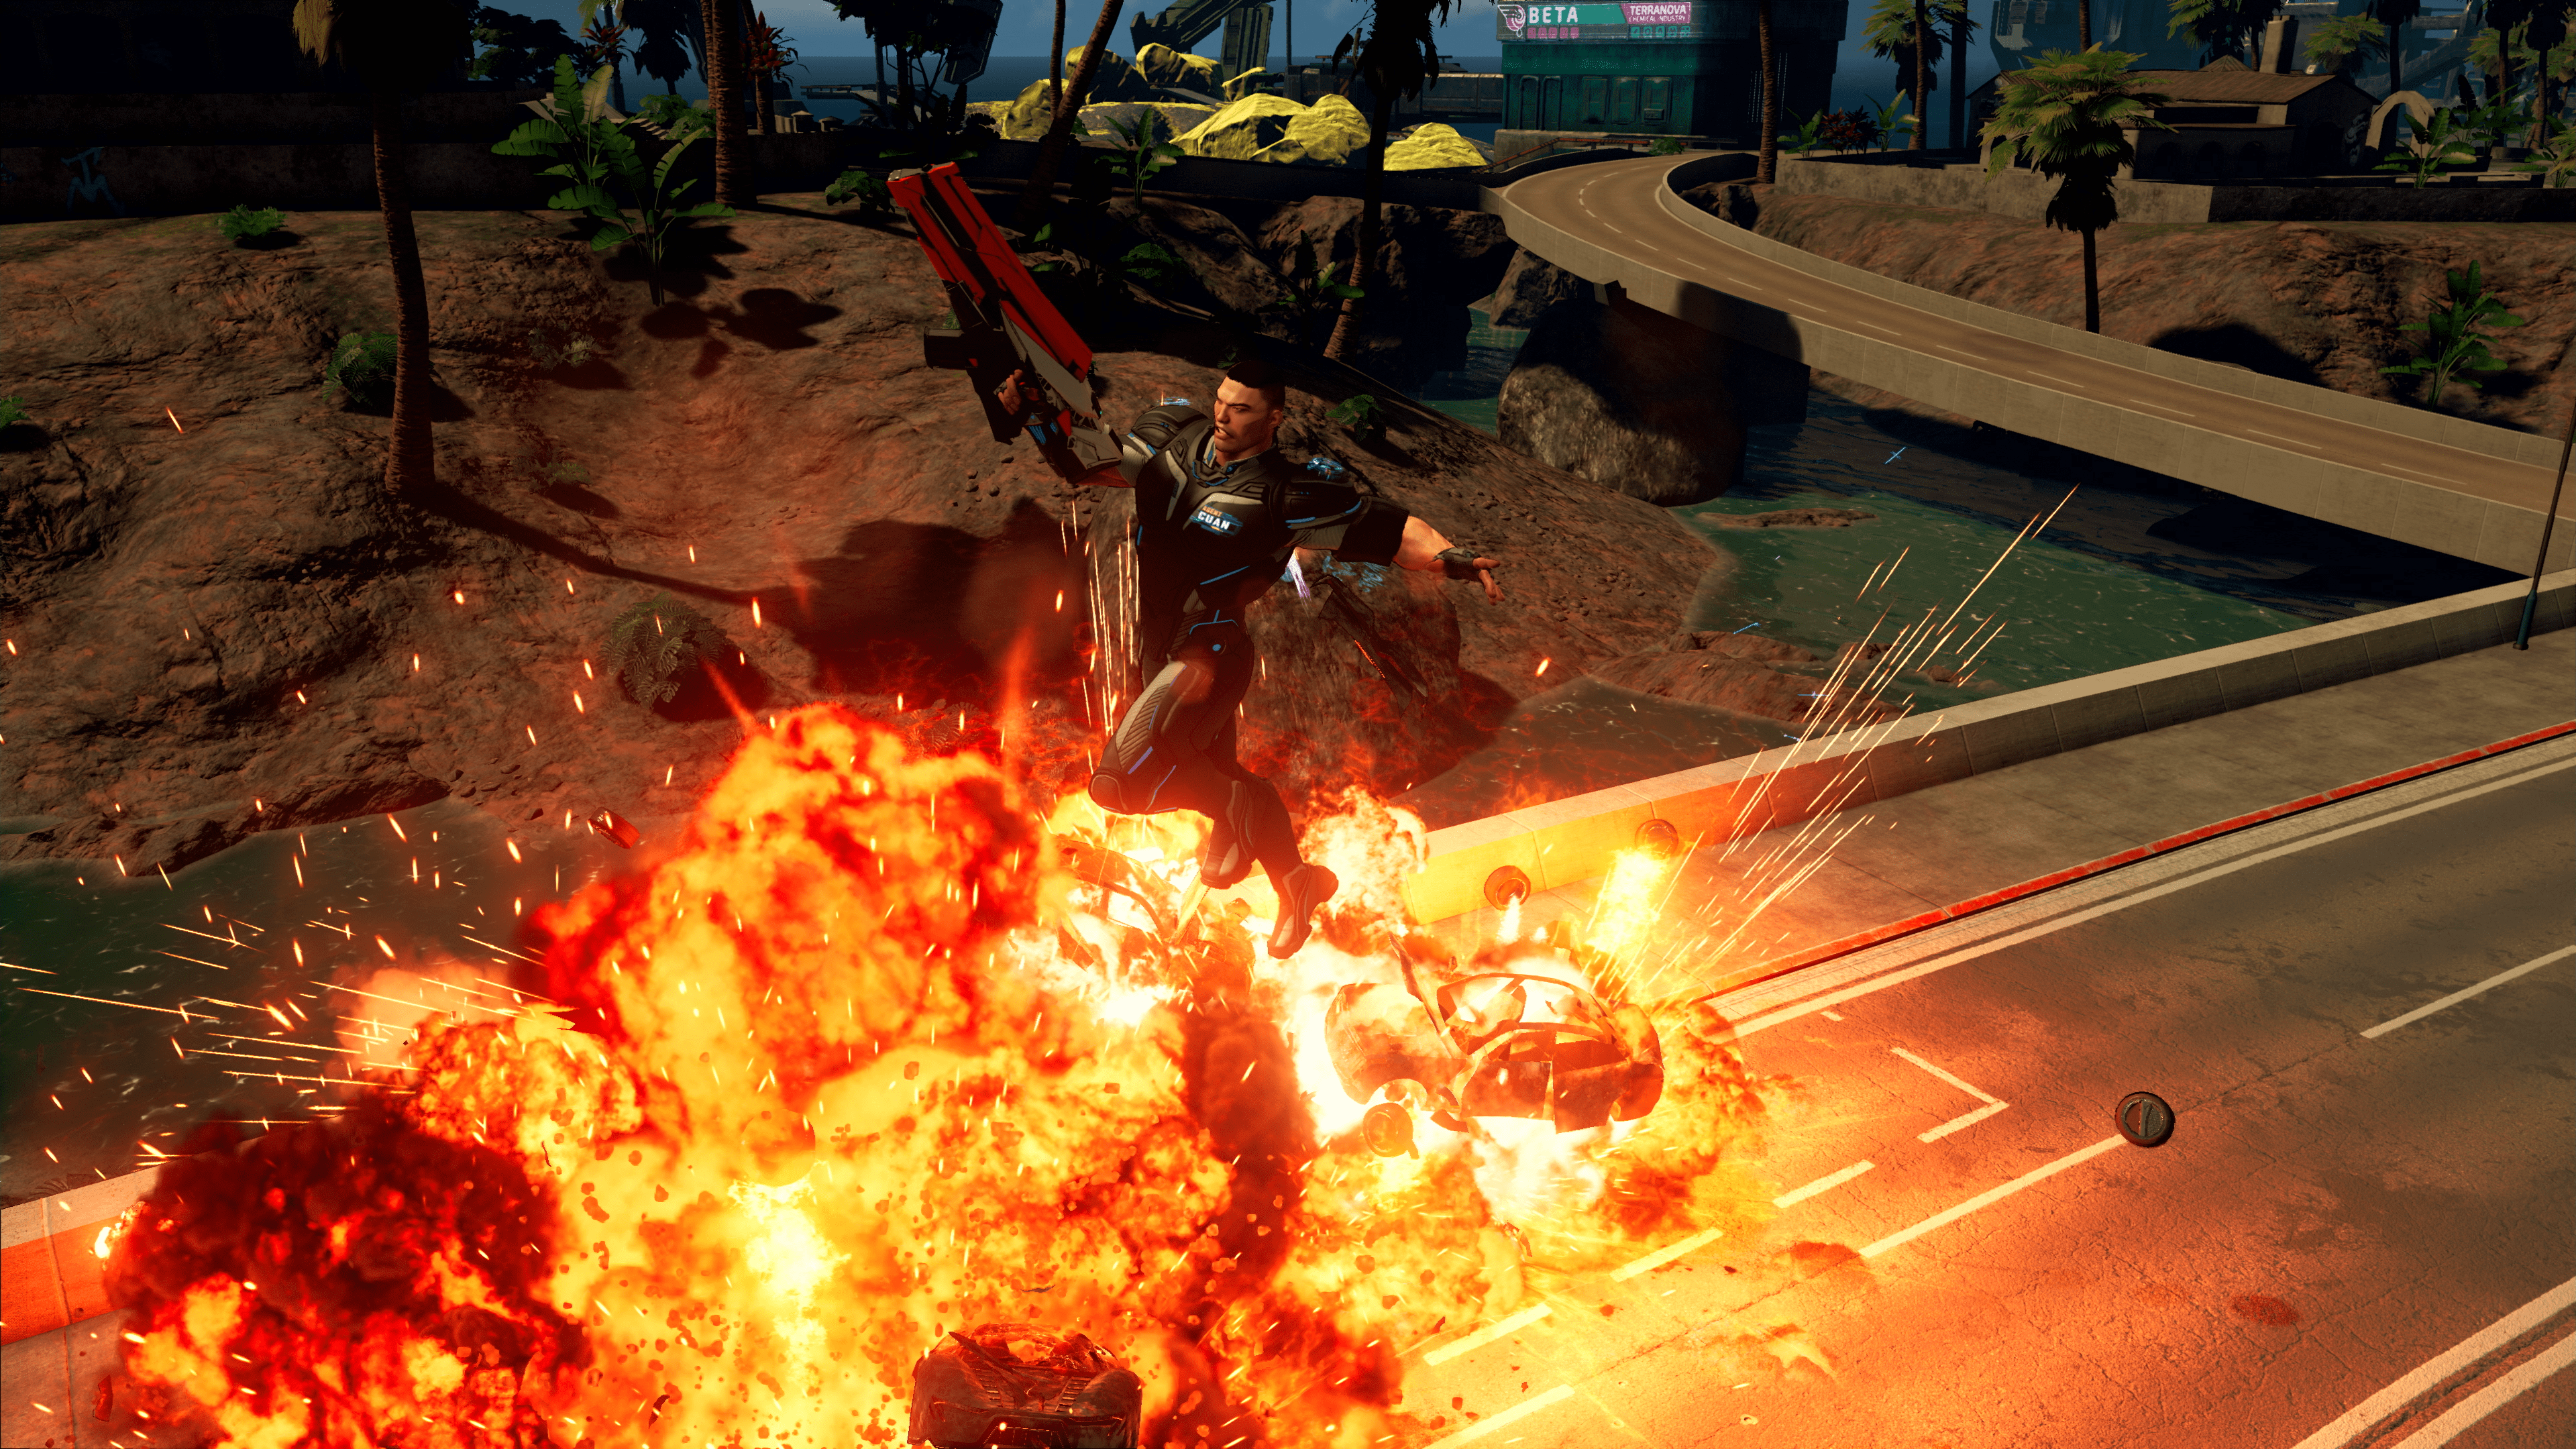 Just go play Crackdown 1 again.